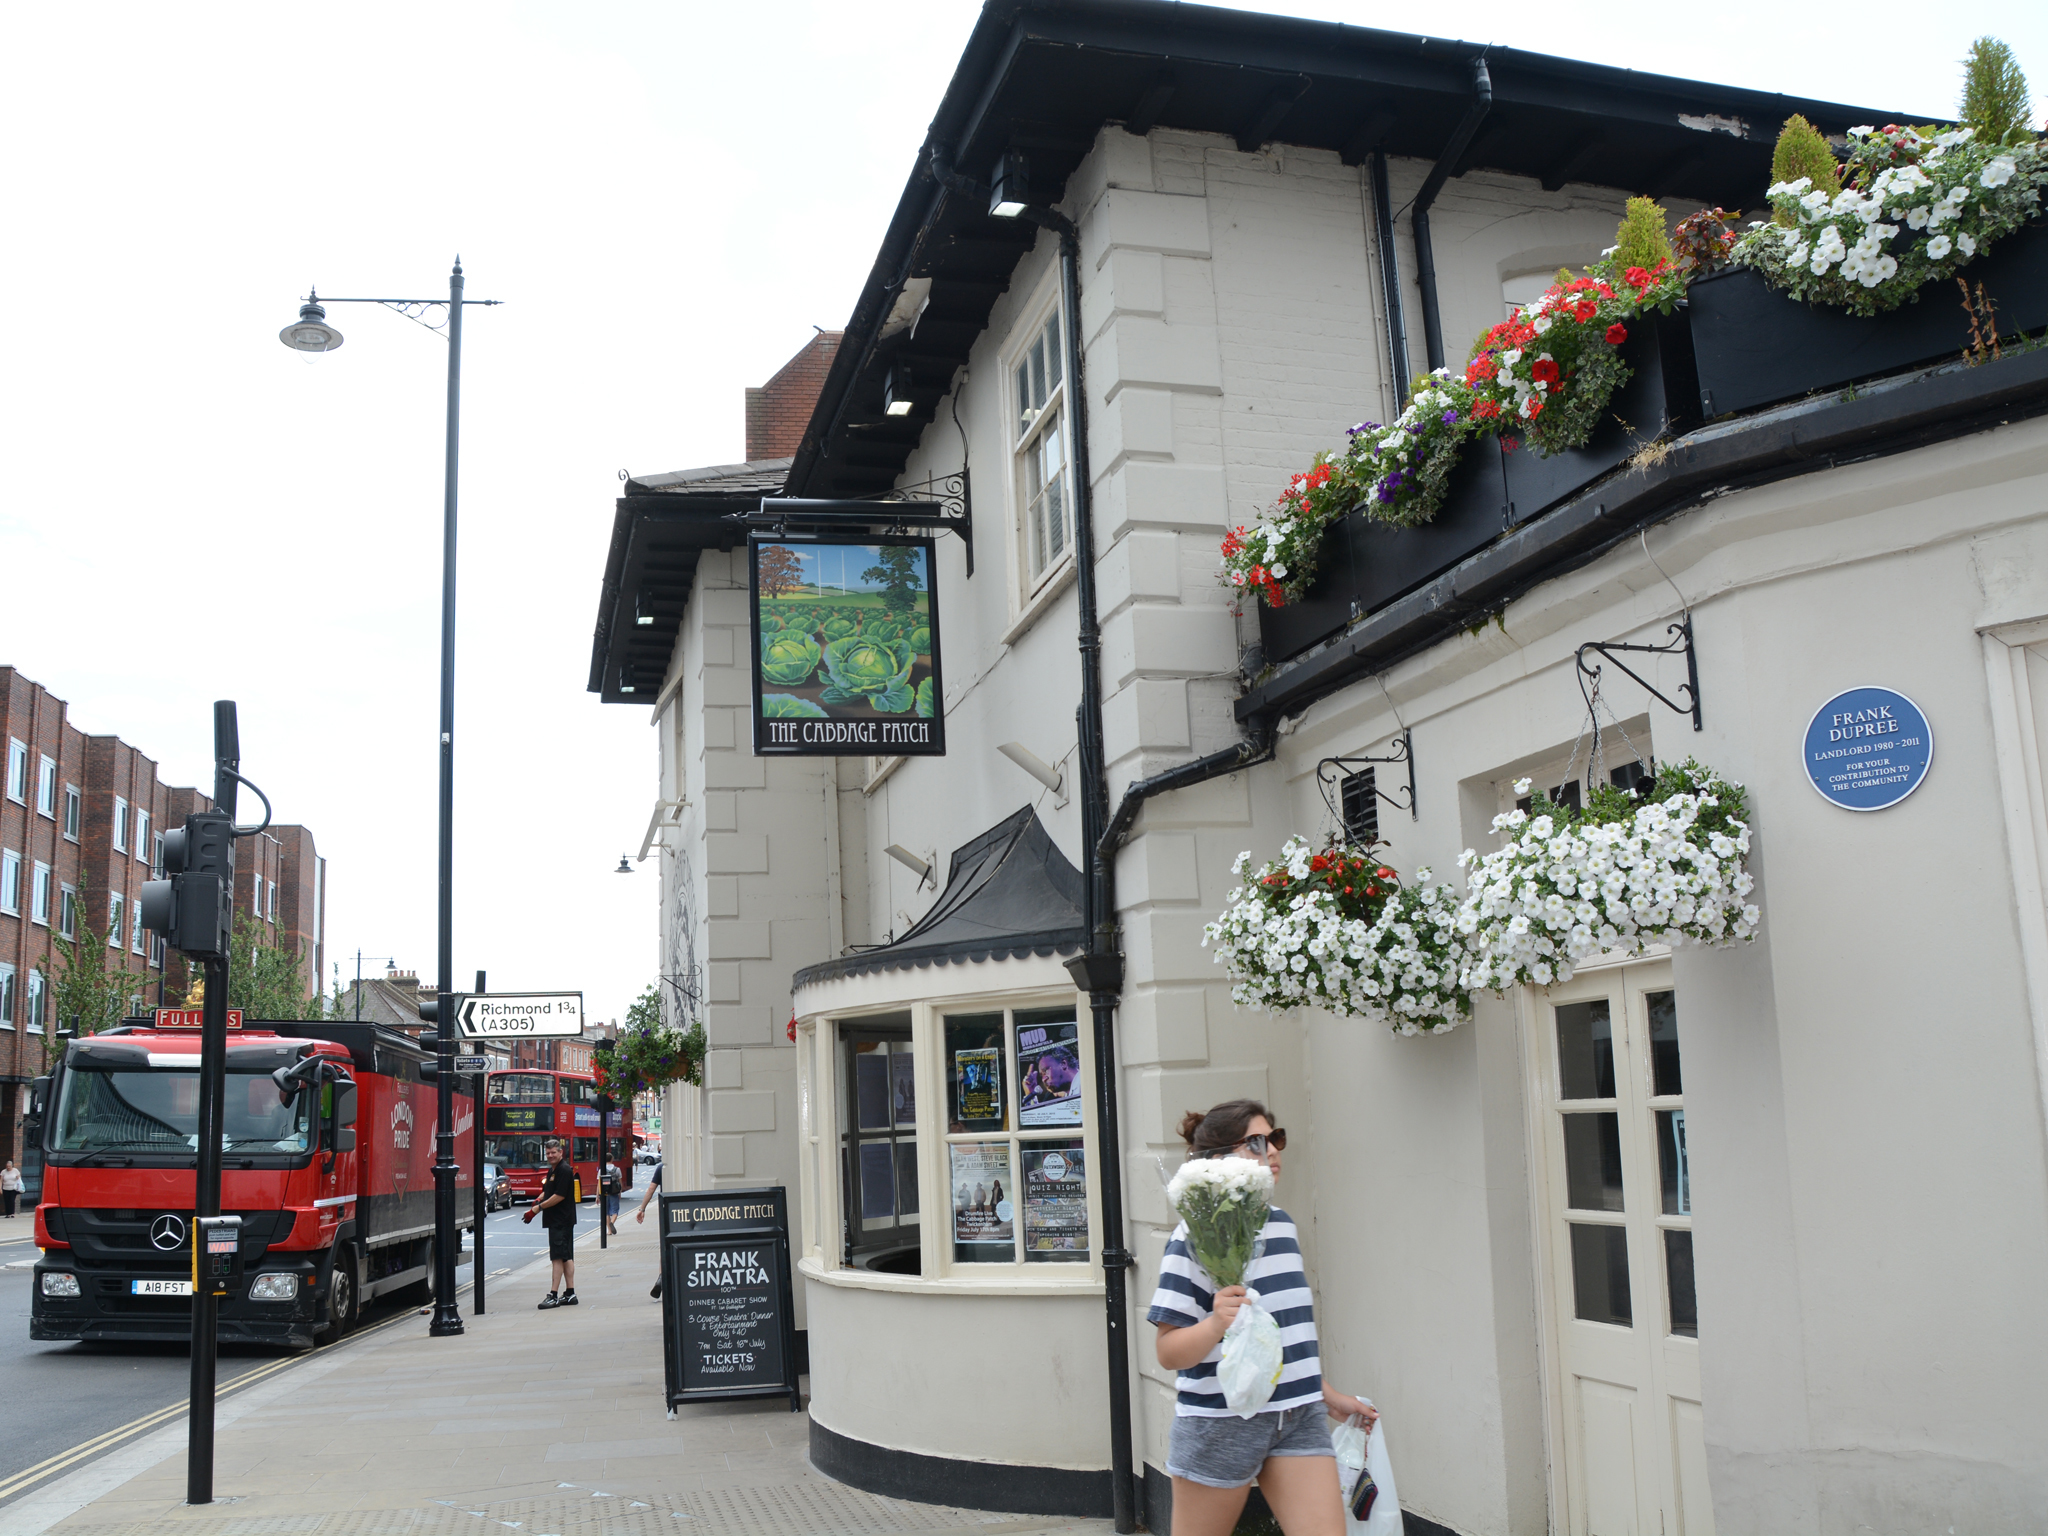 Pubs showing the Six Nations